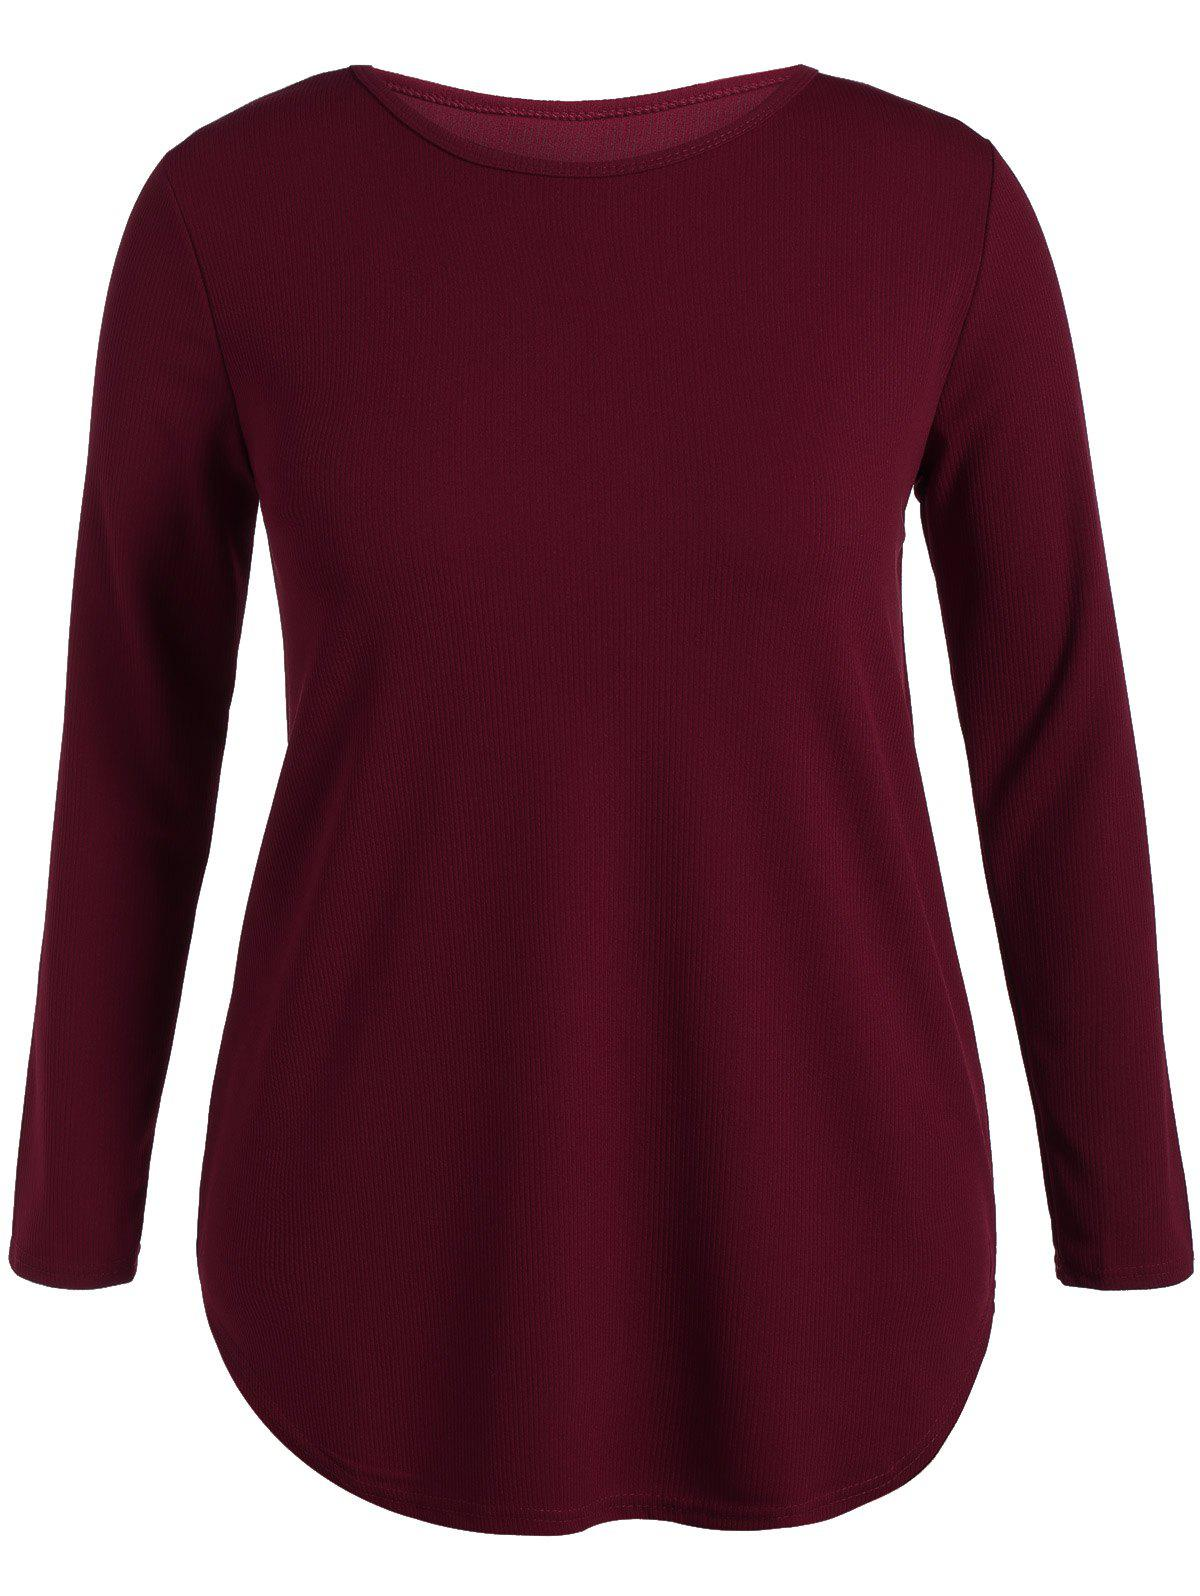 Jewel Neck Long Sleeve Plus Size T-Shirt - WINE RED 4XL